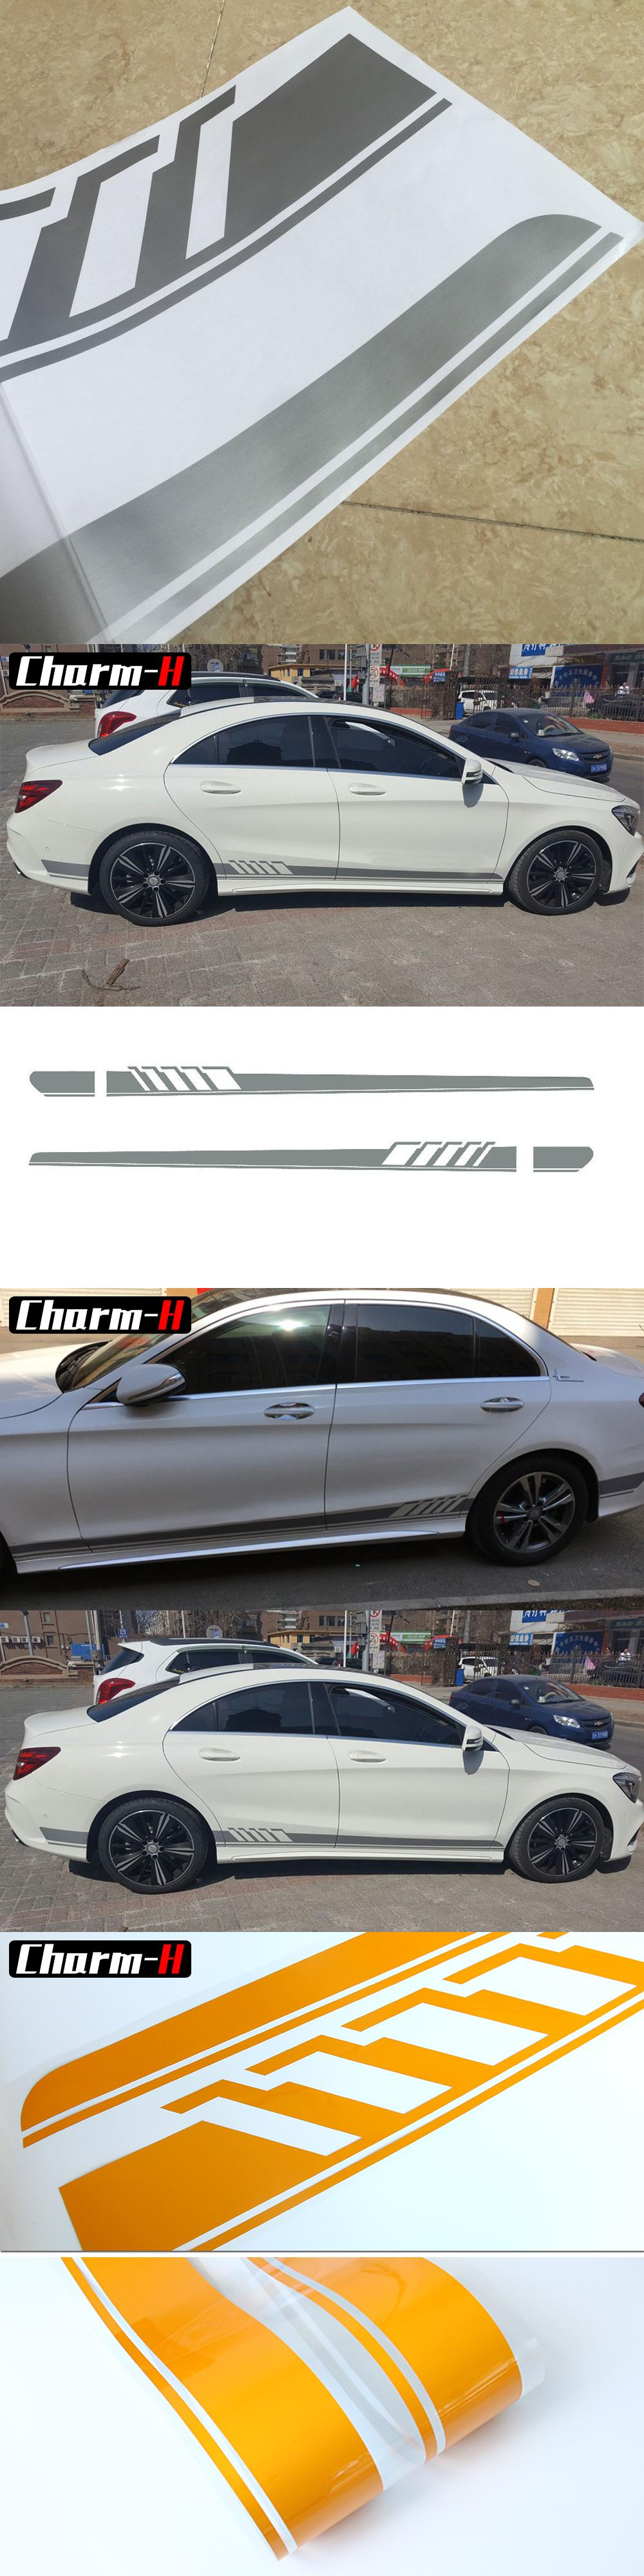 Silver Gray Car Side Skirt Decal Sticker For Mercedes Benz W205 C Class Amg Edition 1 Racing Stripe Stickers Racing Stripes Mercedes Benz Benz [ 4000 x 1000 Pixel ]